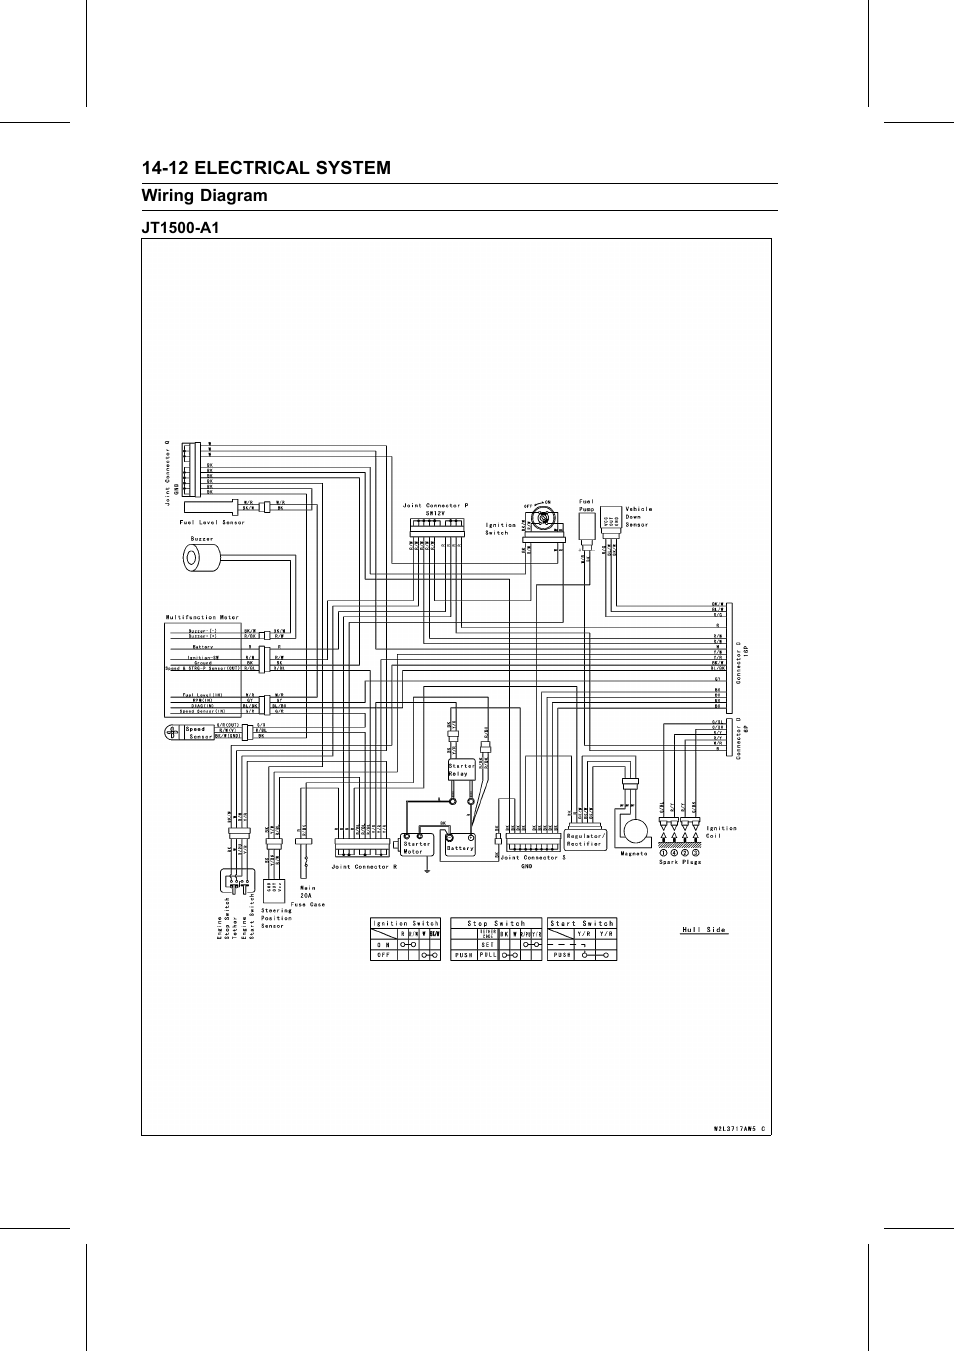 kawasaki stx 15f page338 yamaha stx 125 wiring diagram yamaha stx 125 engine diagram wiring diagram for a wind turbine at gsmx.co